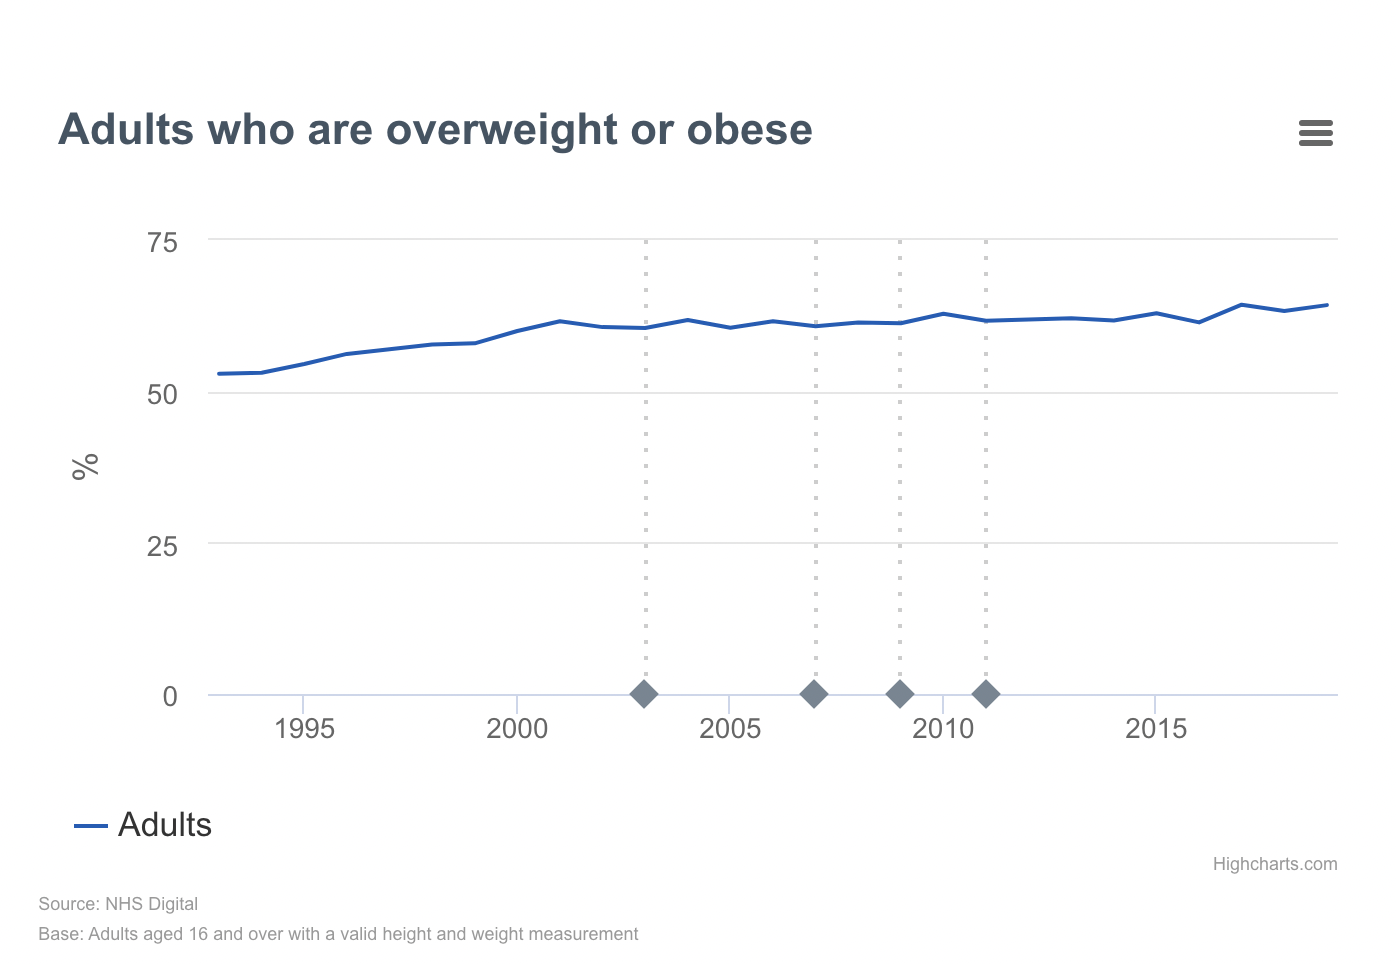 Adult obesity in the UK